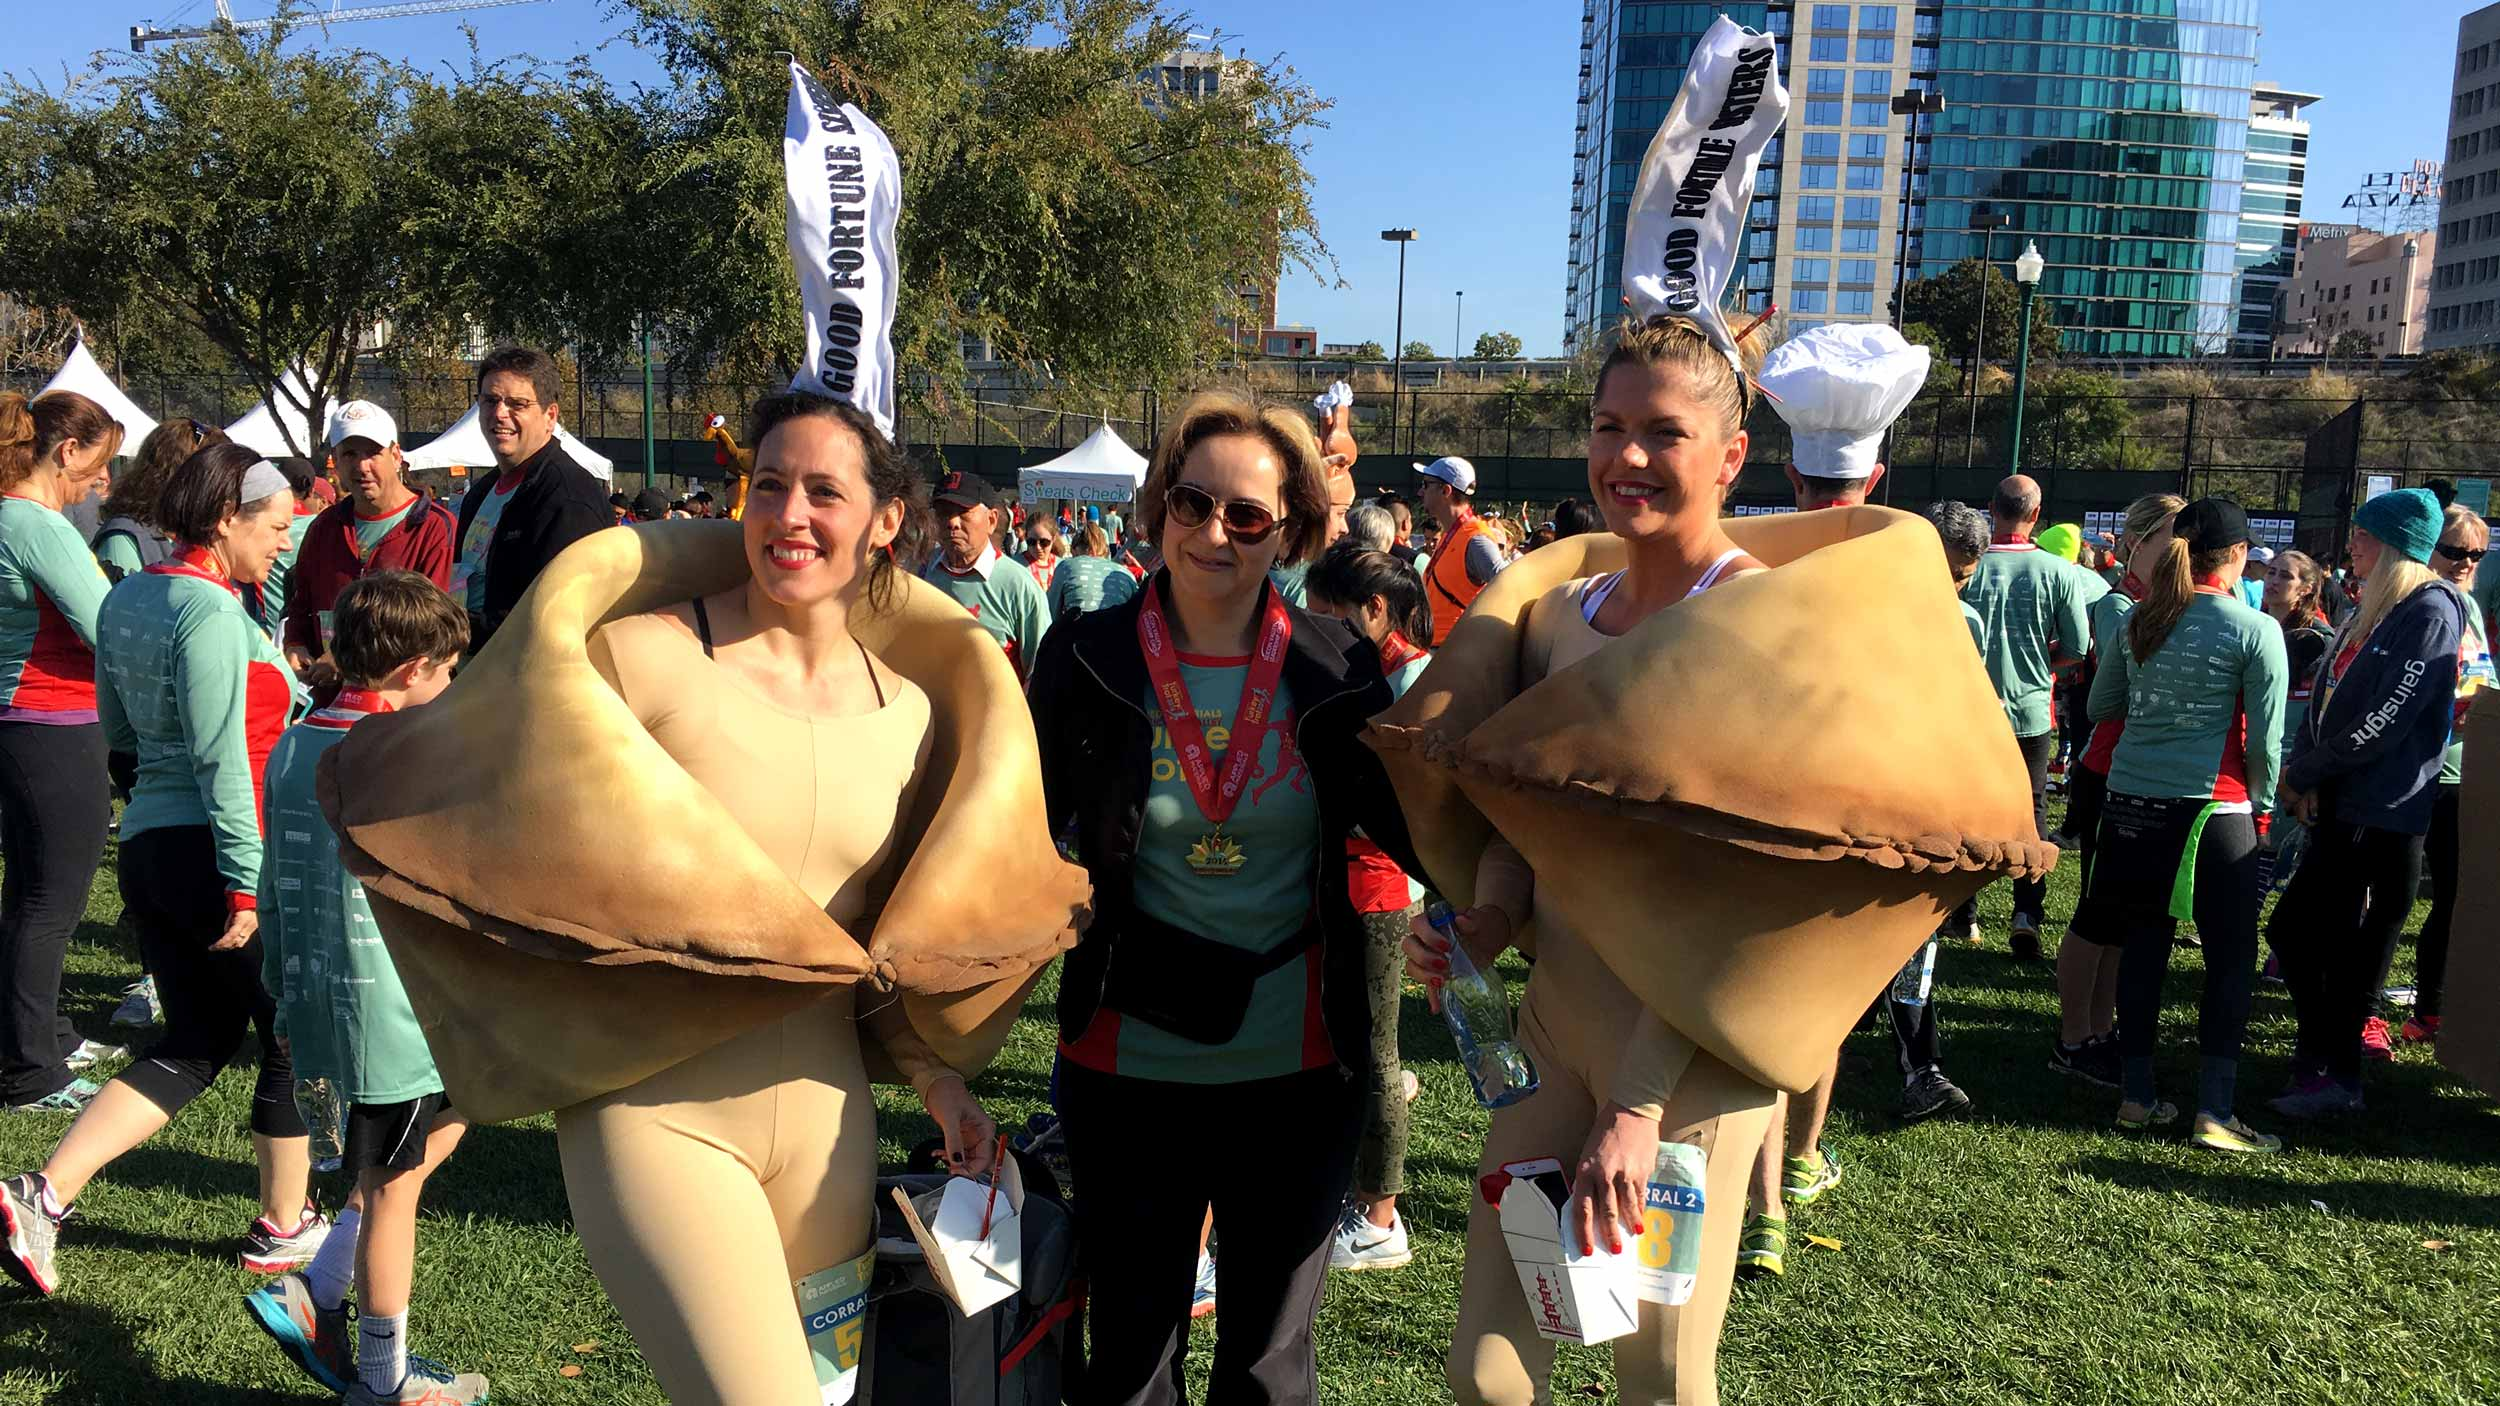 fortune cookie costumes at the Silicon Valley Turkey Trot